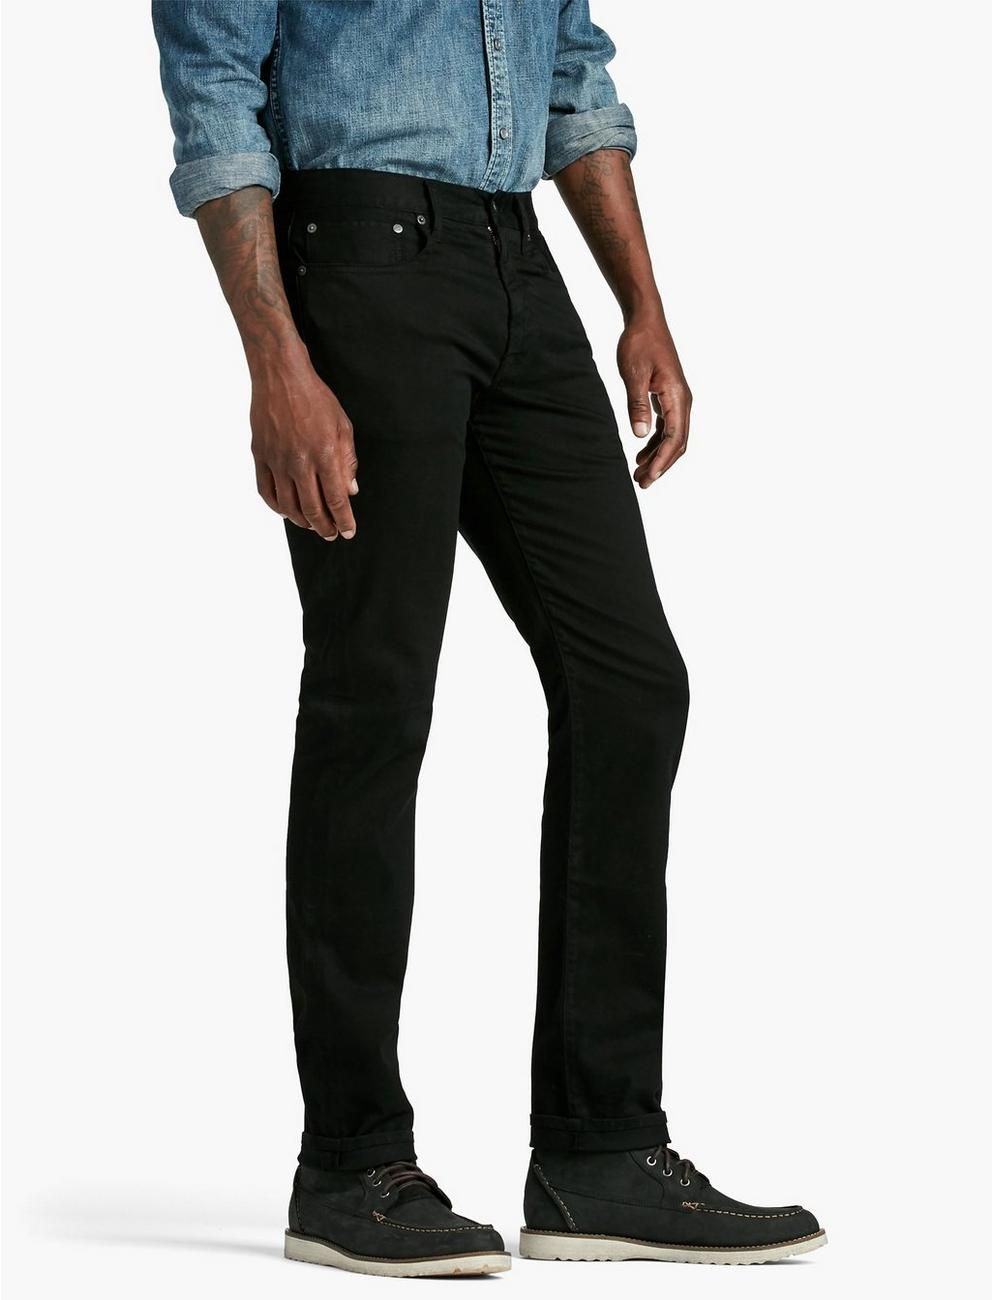 121 SLIM STRAIGHT SATEEN STRETCH JEAN,